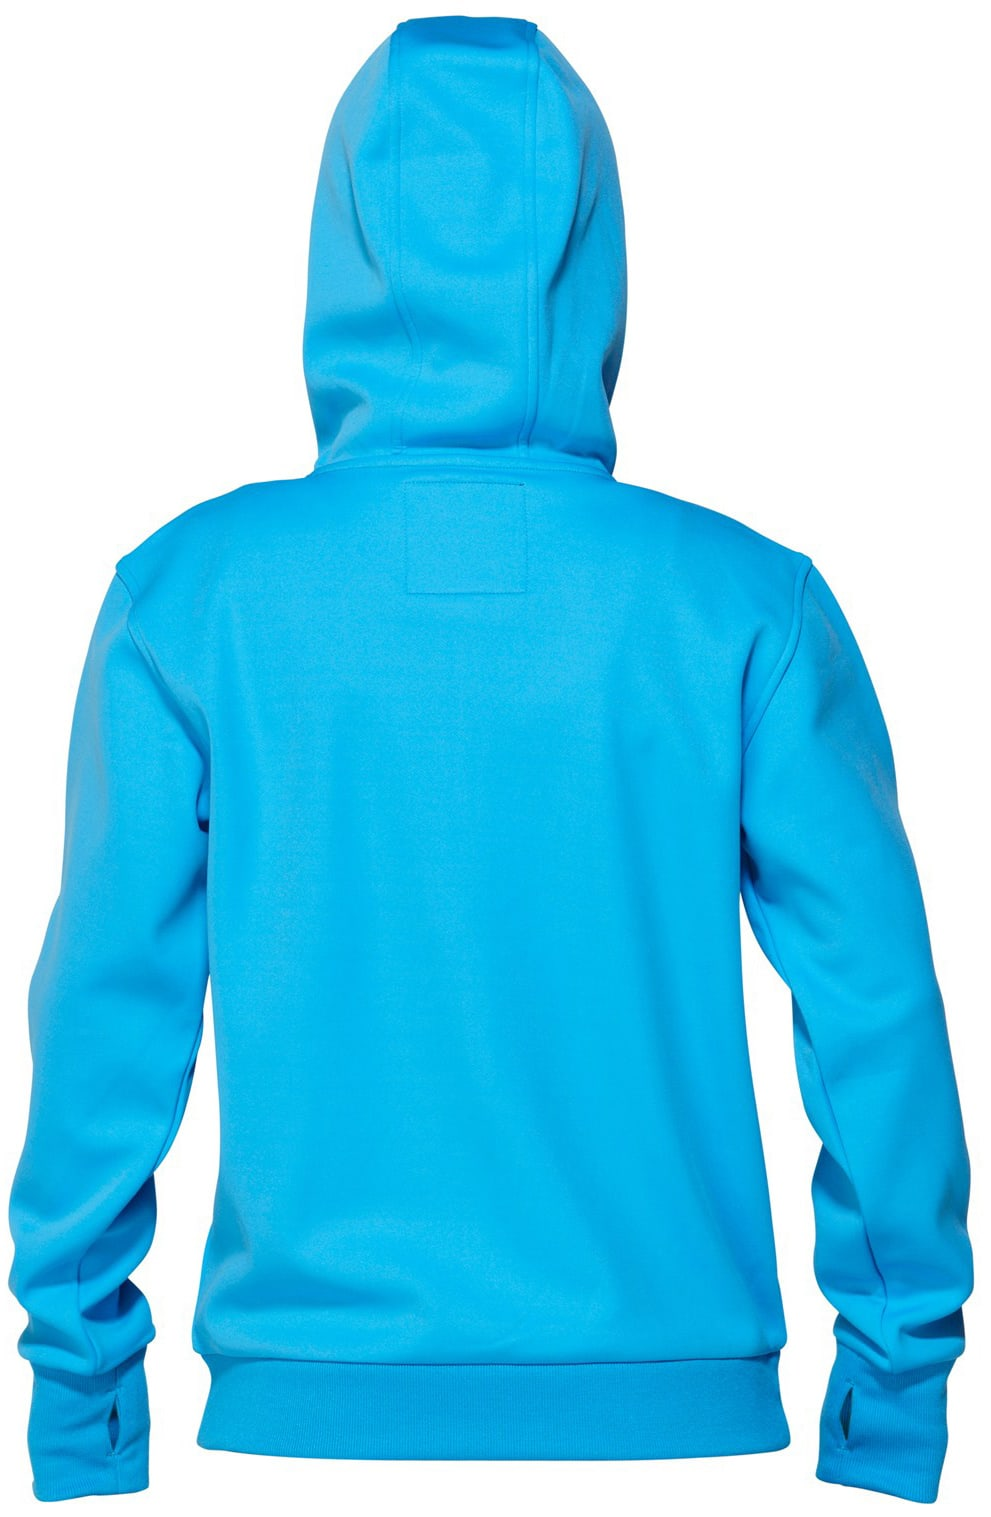 14 50 Outlet >> On Sale Quiksilver Nice Hoodie - Kids, Youth up to 55% off